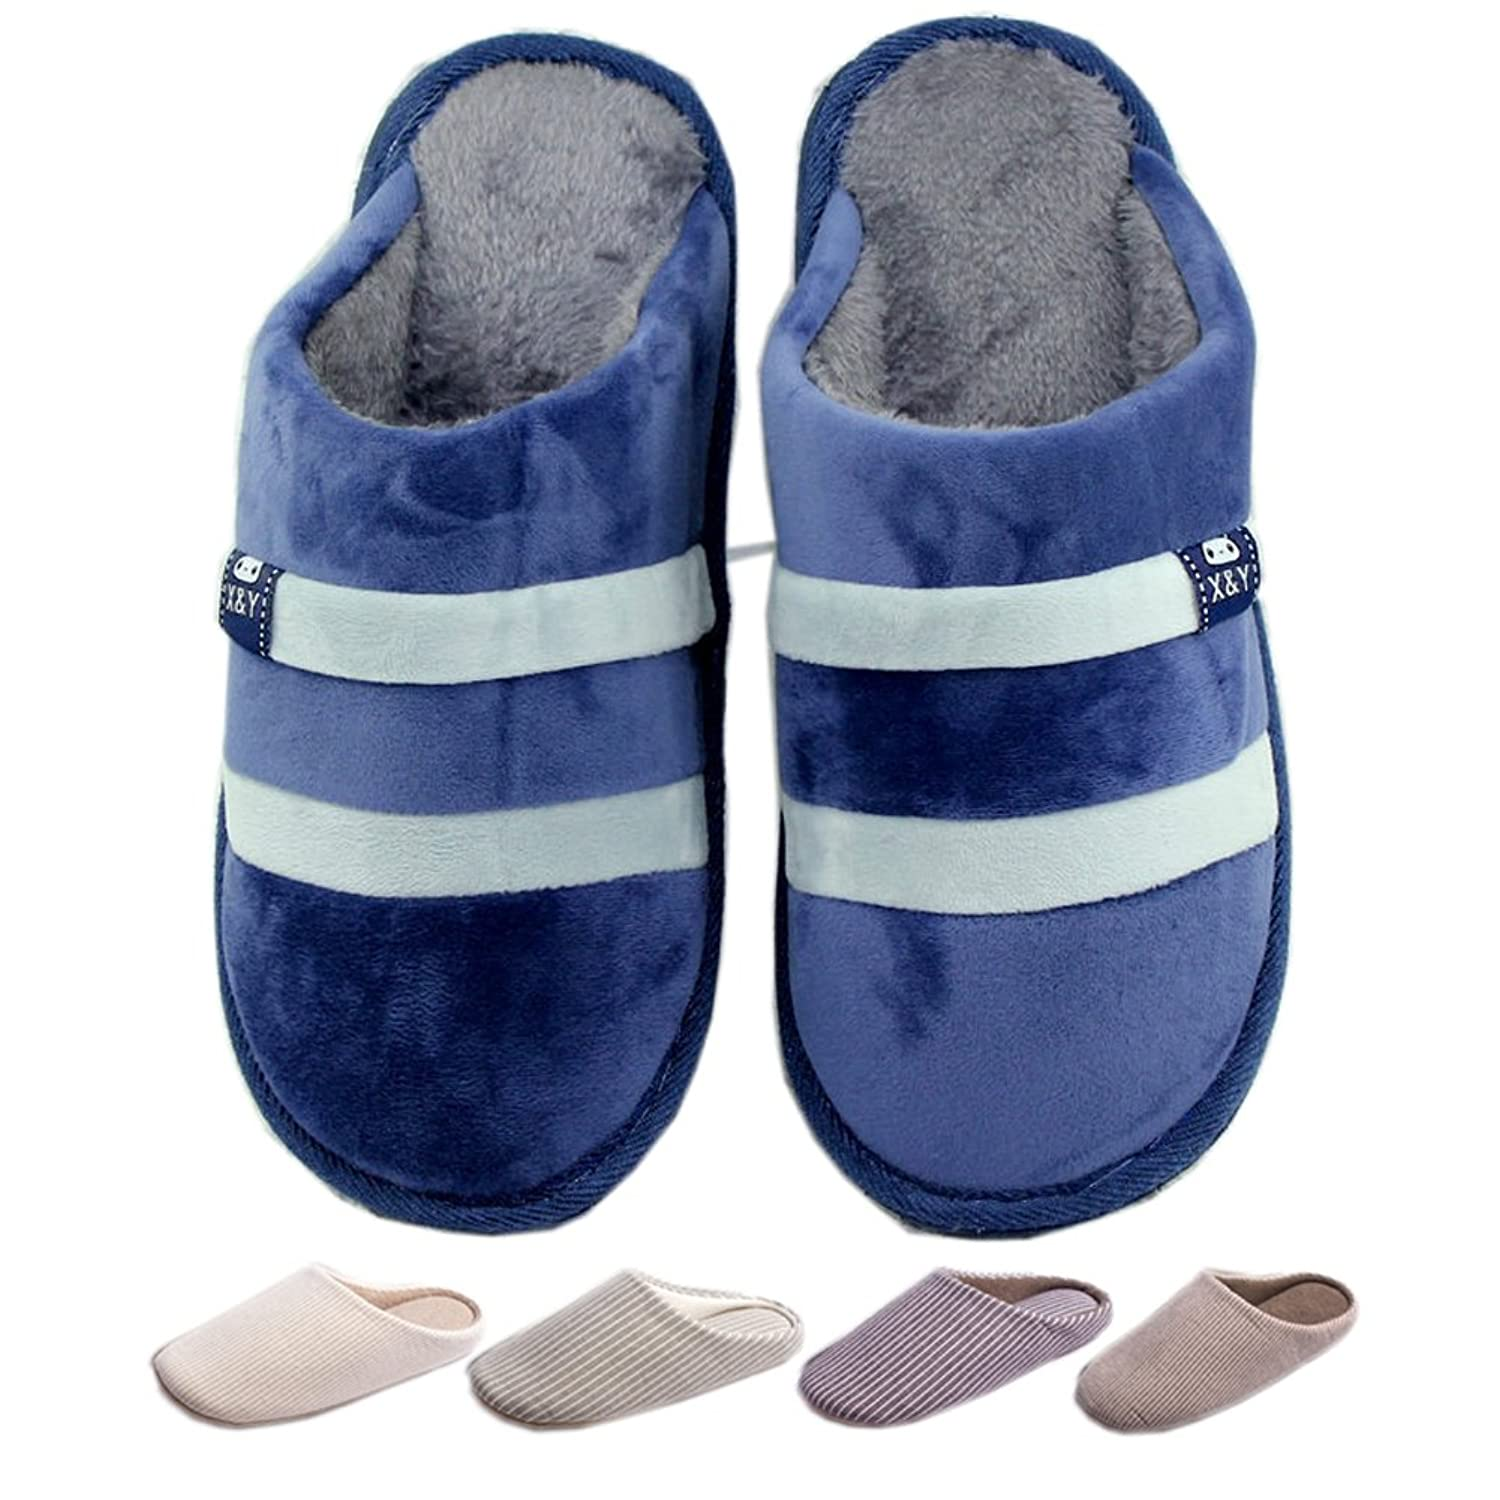 Lijeer Indoor Slippers Soft Home Autumn Winter Memory Foam Wood Floor  Couple Men Women Warm